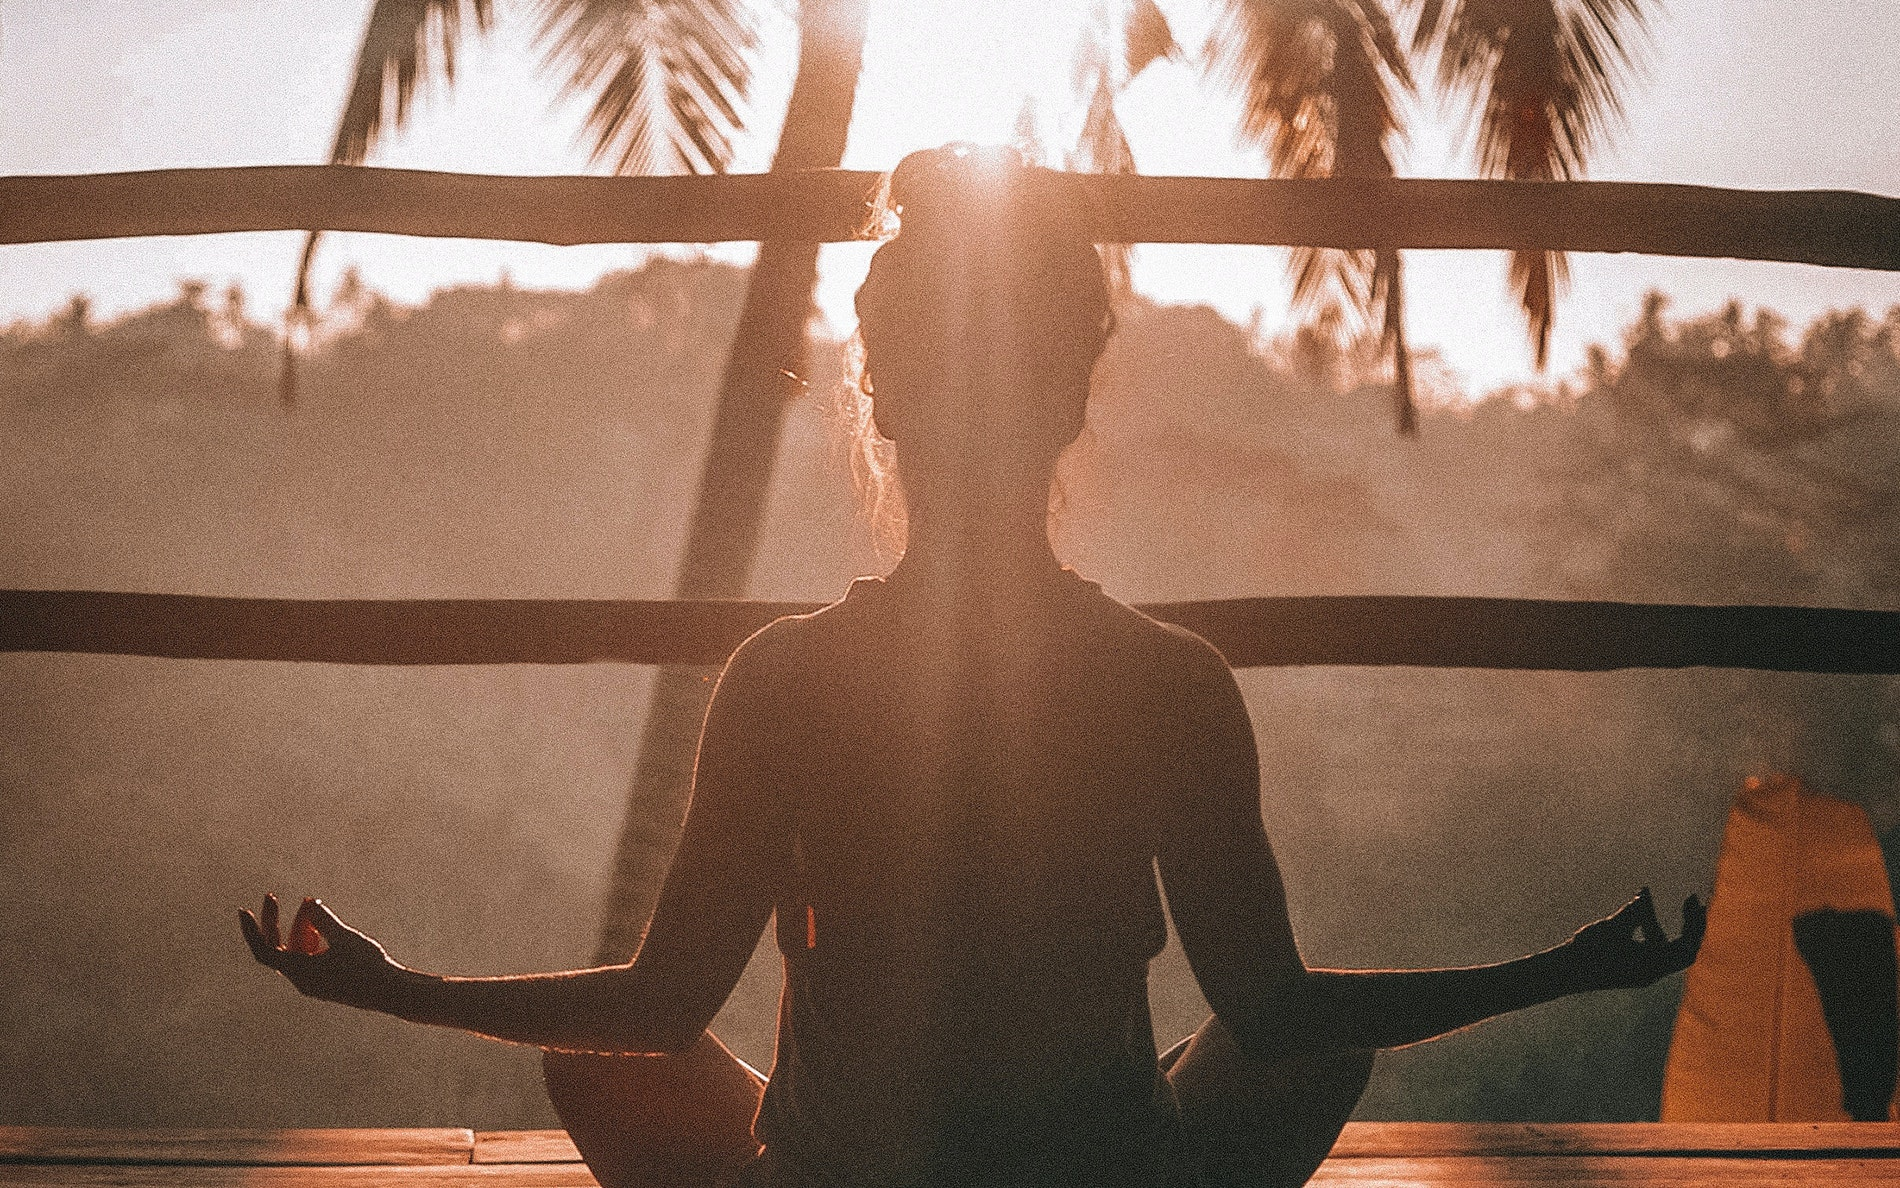 Cancers might set off on that yoga retreat they've been eyeing for a perfect 2019 vacation.